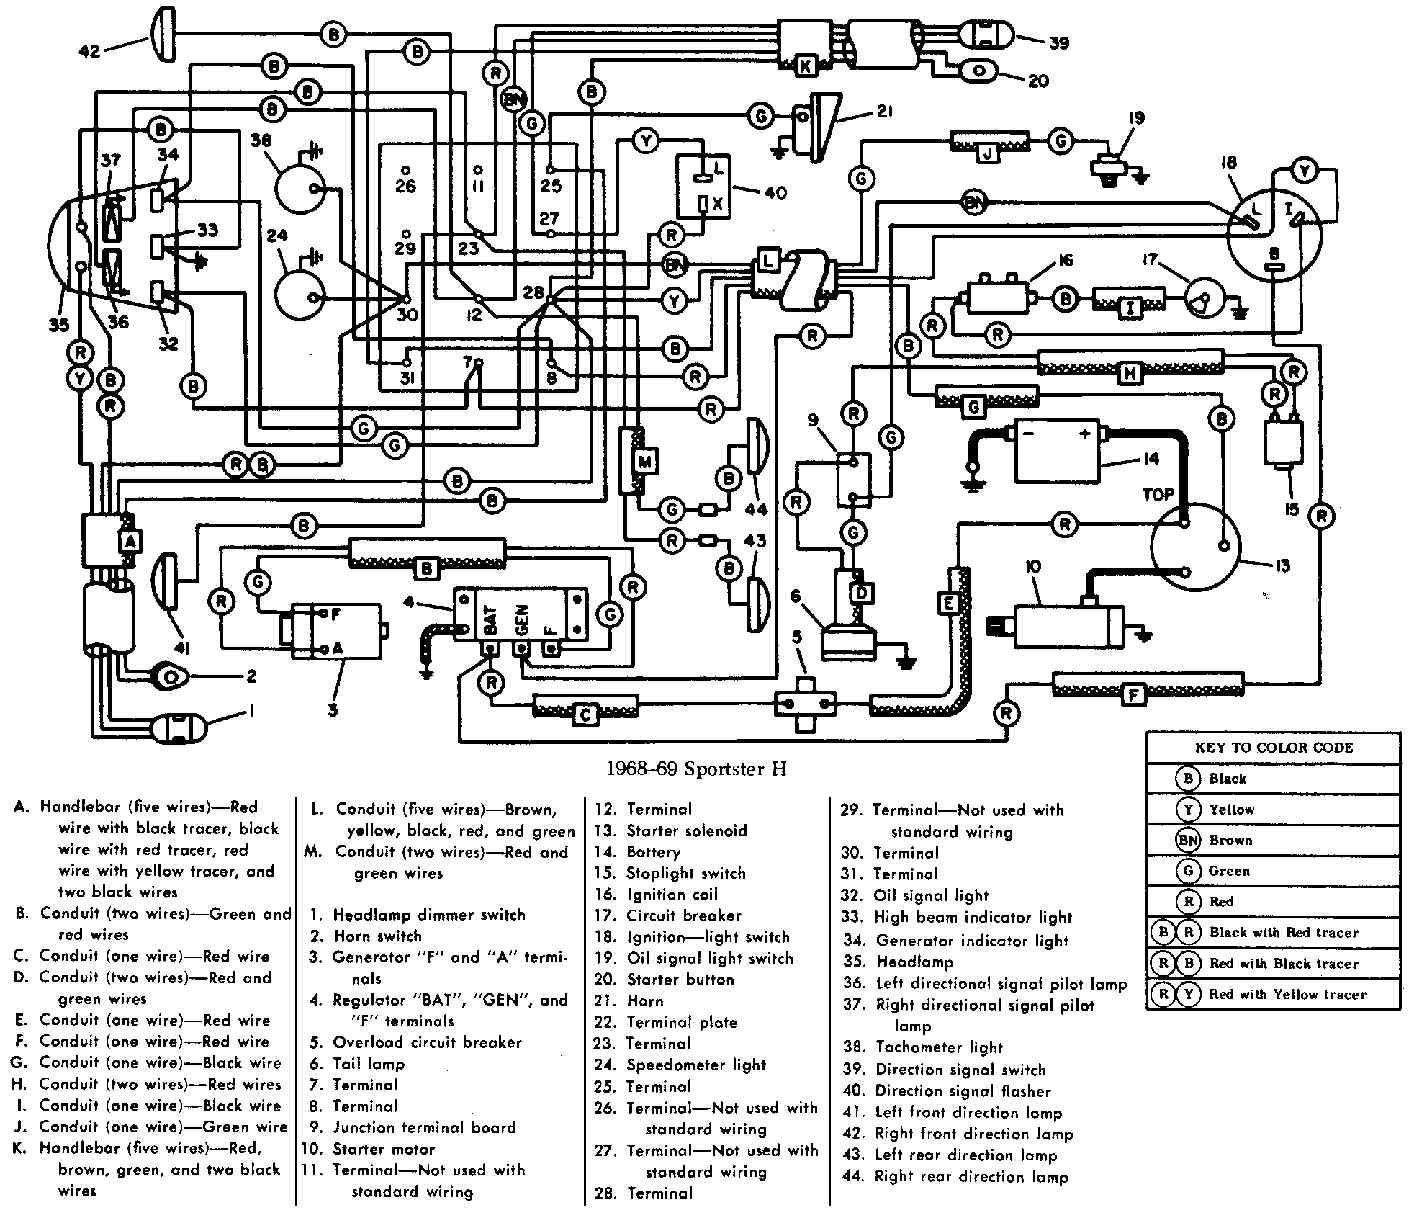 1974 Sportster Directional Light Wiring Diagram Harley Davidson Sportster Electrical Wiring Diagram Diagram